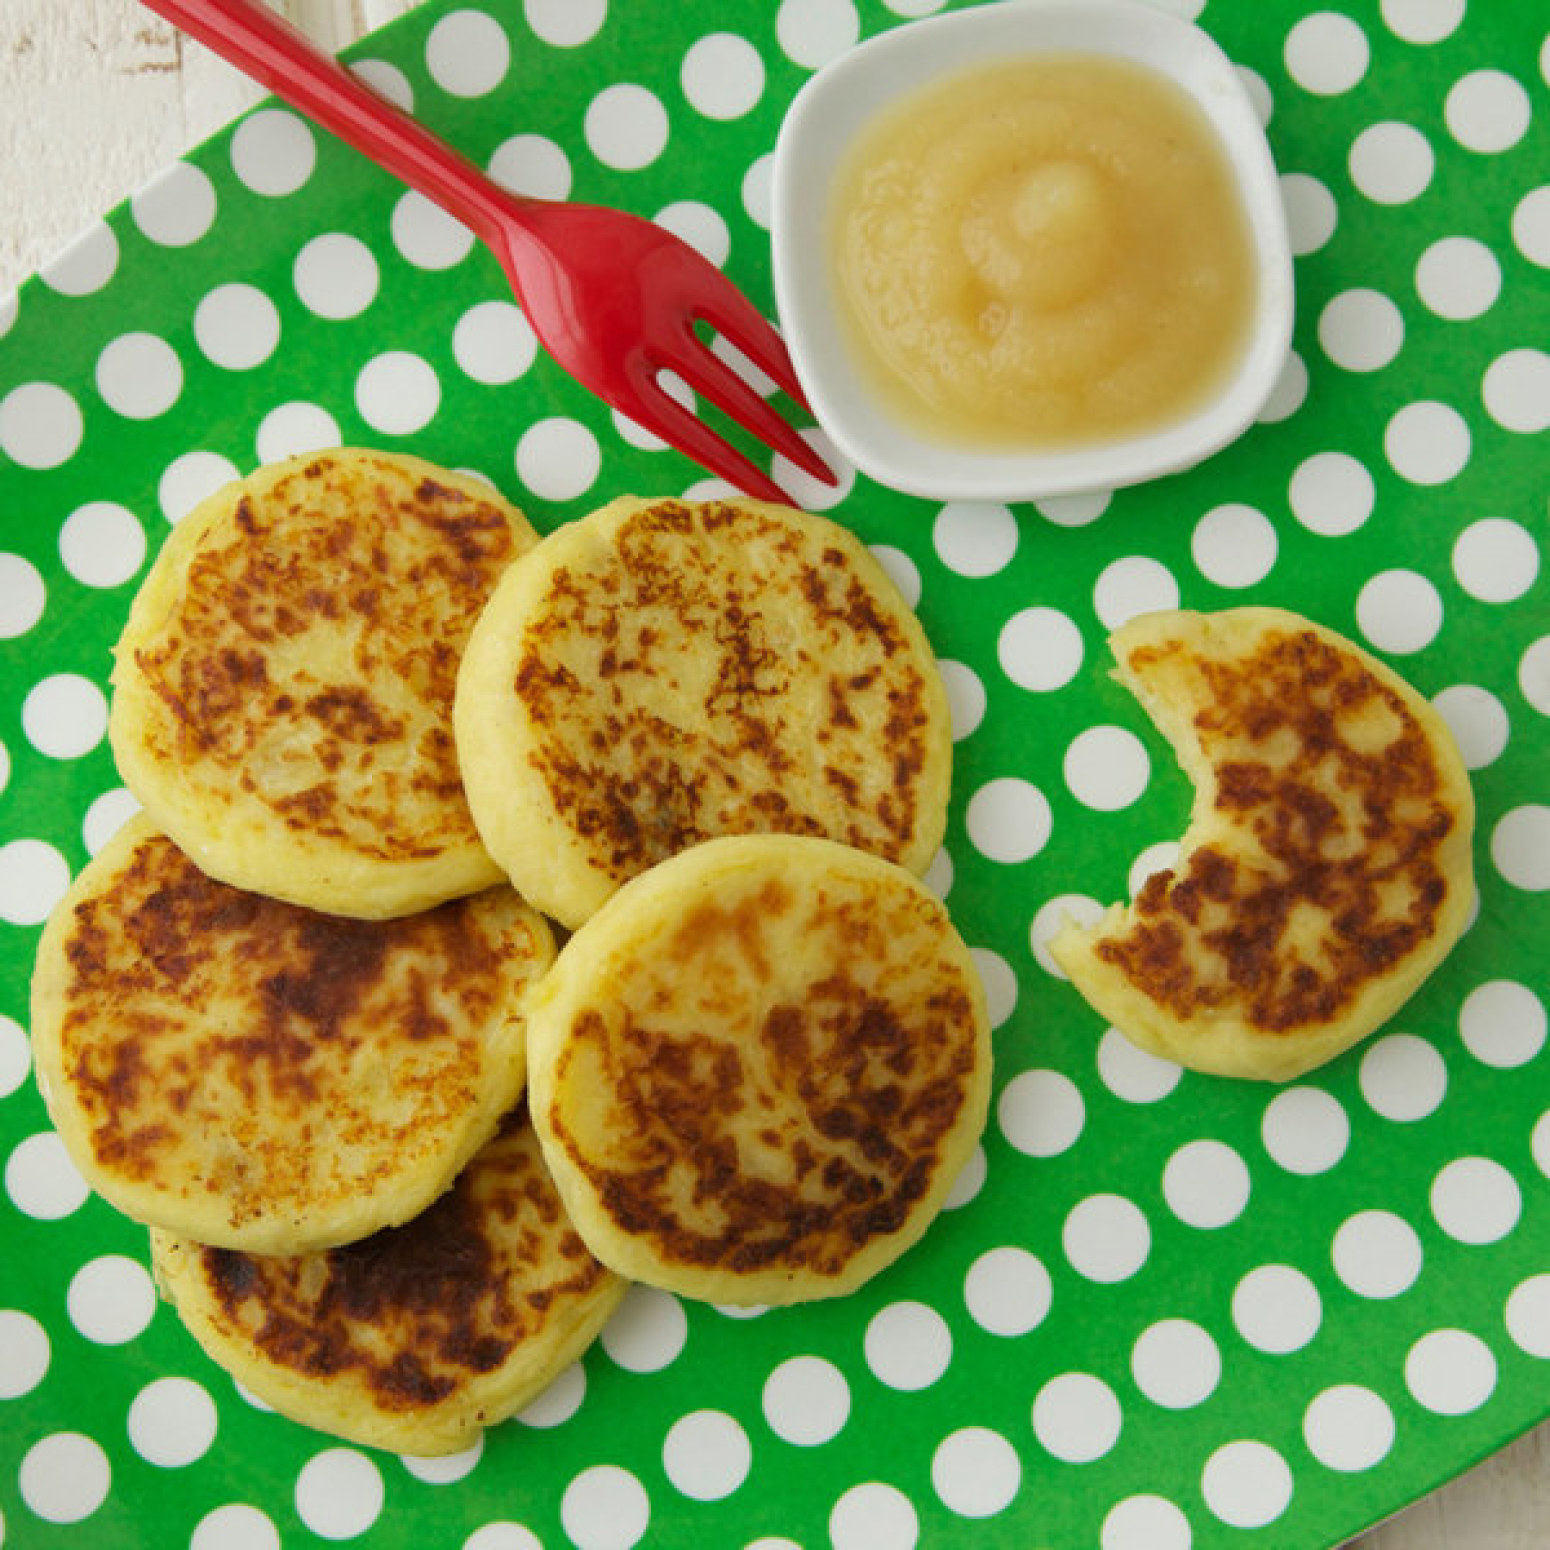 Mashed Potato Cakes Recipe 3 | Just A Pinch Recipes